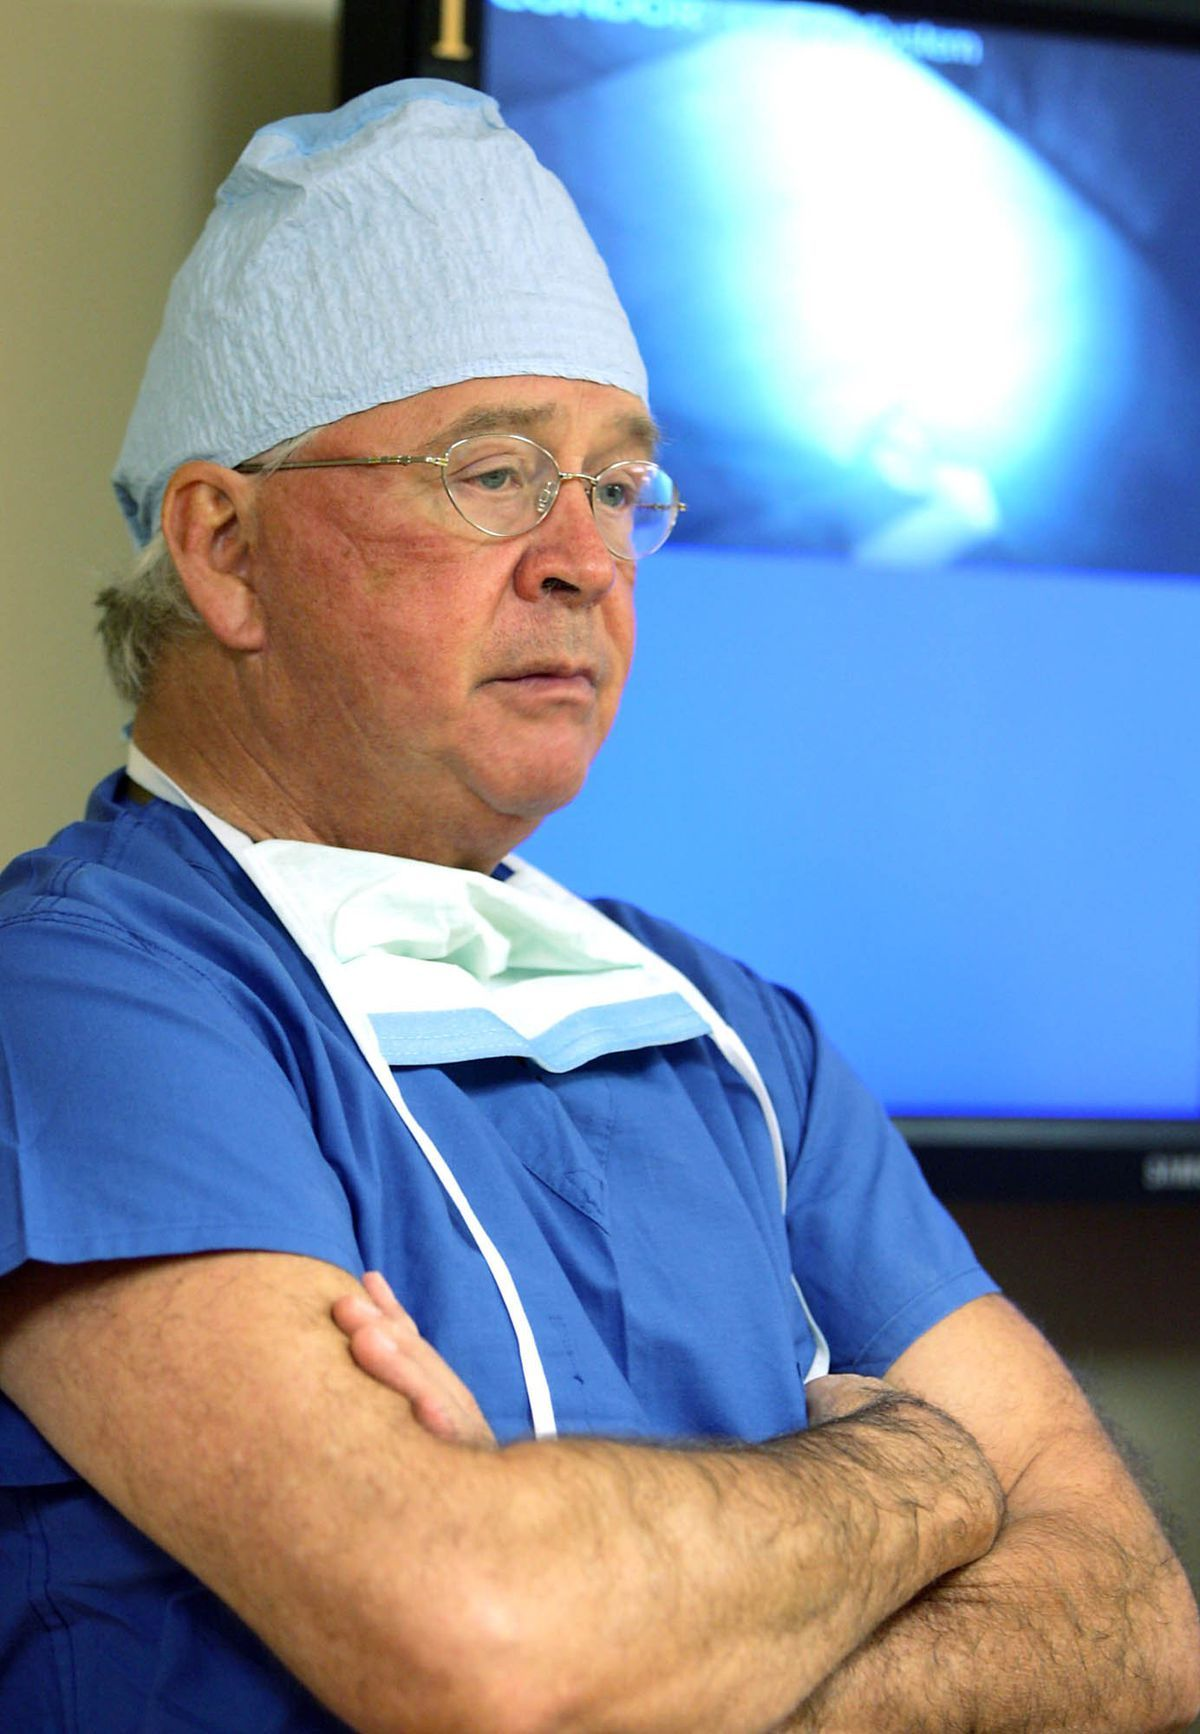 Noted surgeon Dr. James Andrews wants your young athlete